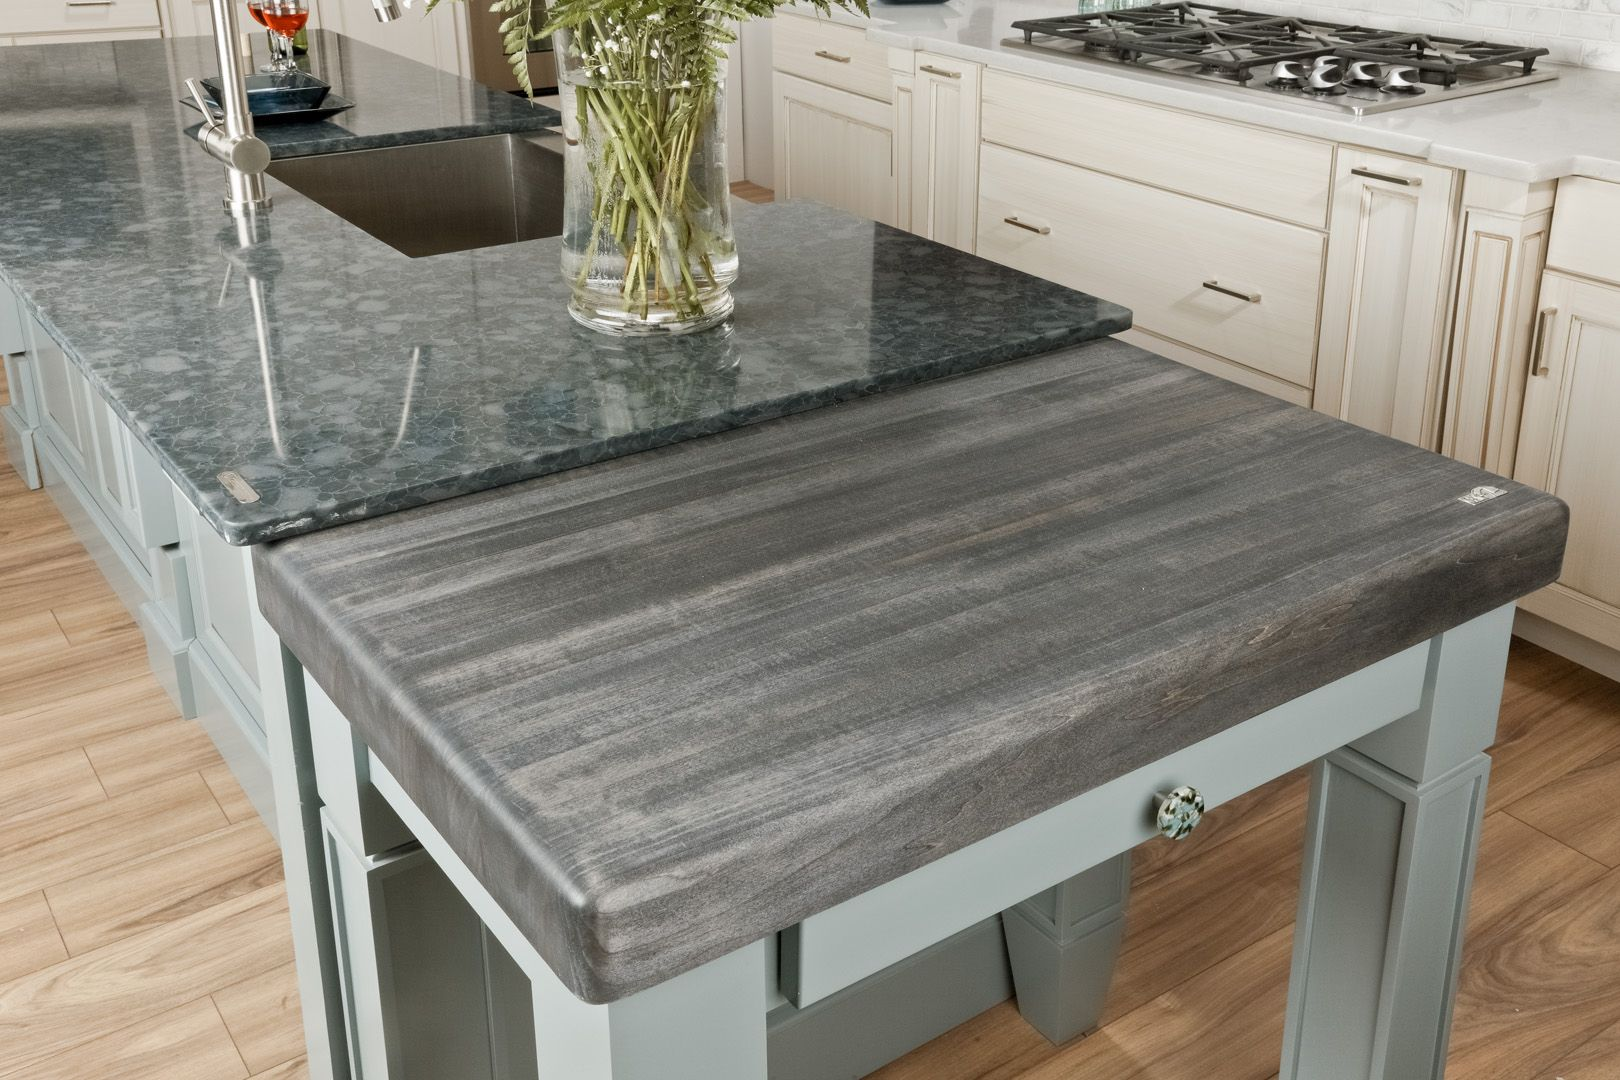 Custom butcher block top by Cafe Countertops http://www